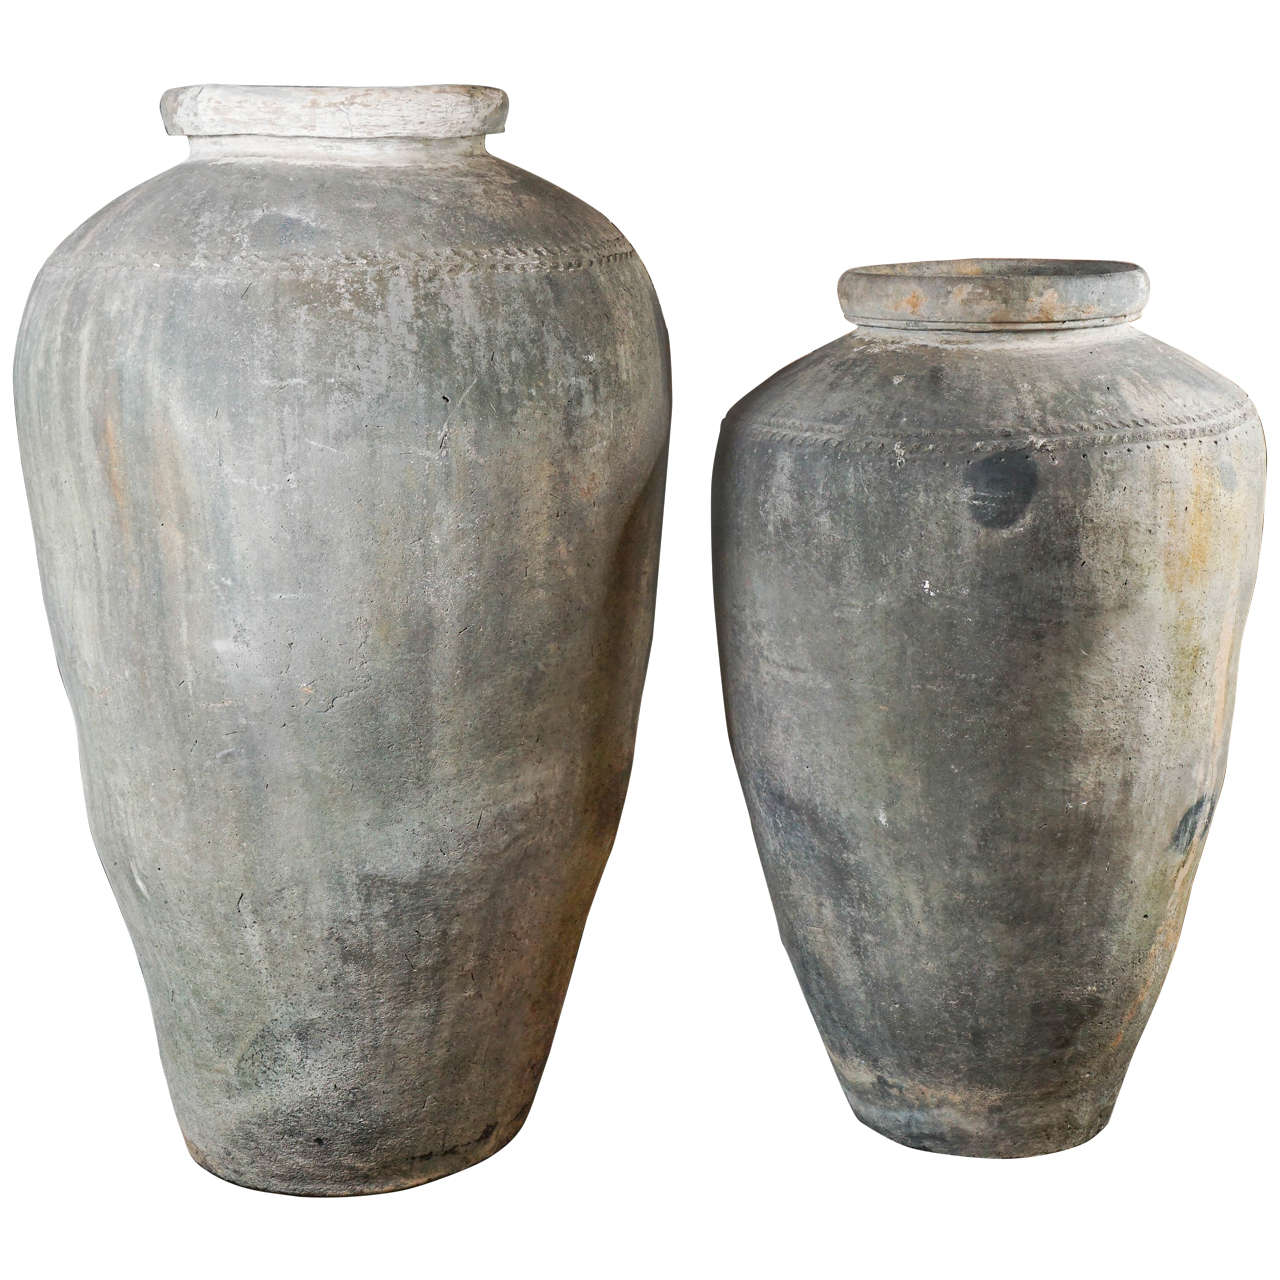 Monumental 19th Century Low Fired Clay Pots For Sale